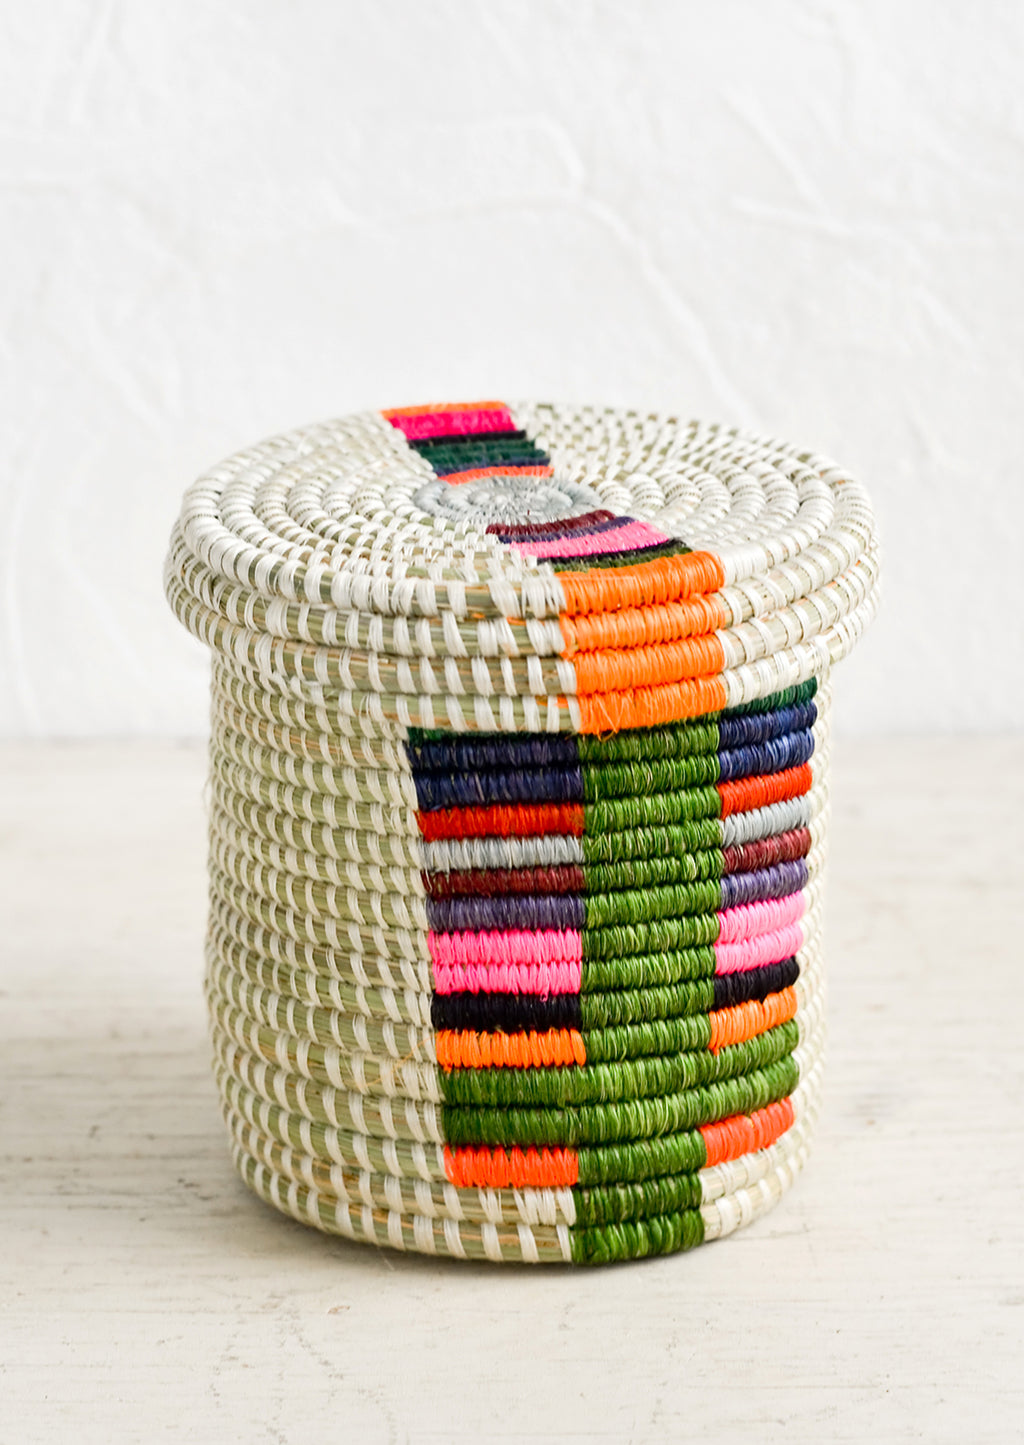 Chroma Multi: A small, round lidded basket made from woven sweetgrass with colorful line pattern.